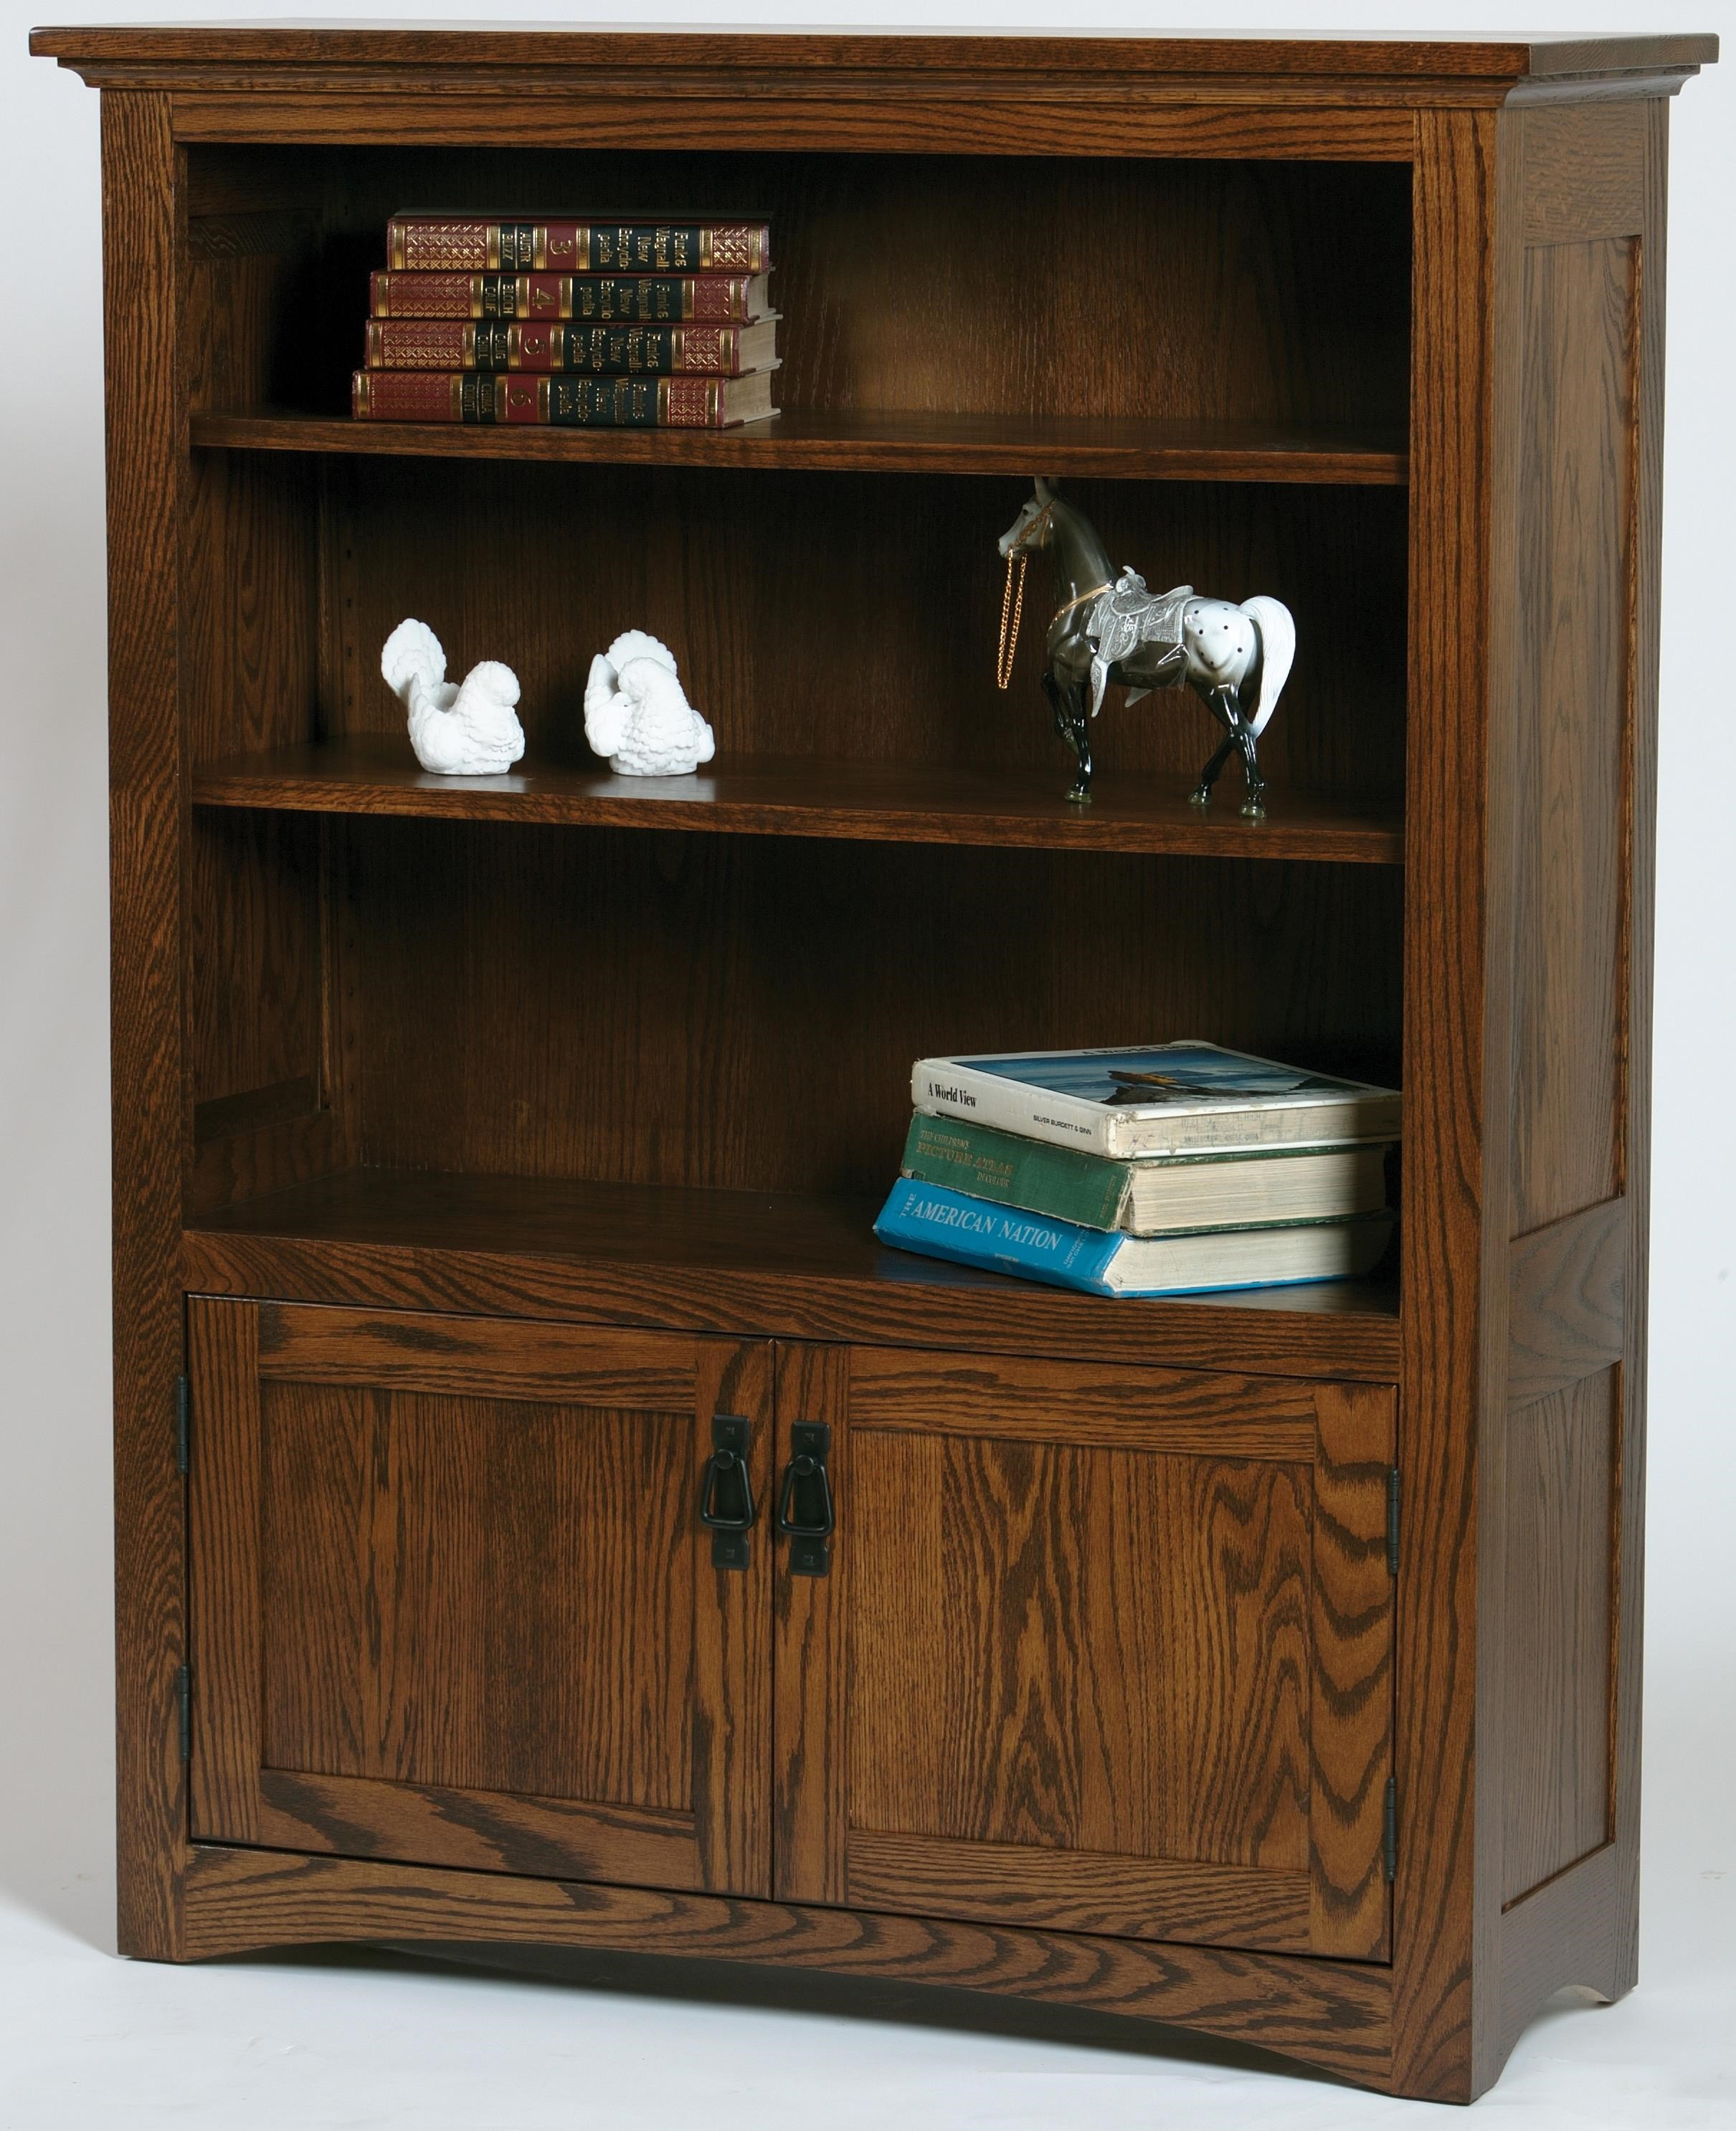 Merveilleux Wonder Wood Wonder Wood Bookcases Customizable Mission Bookcase